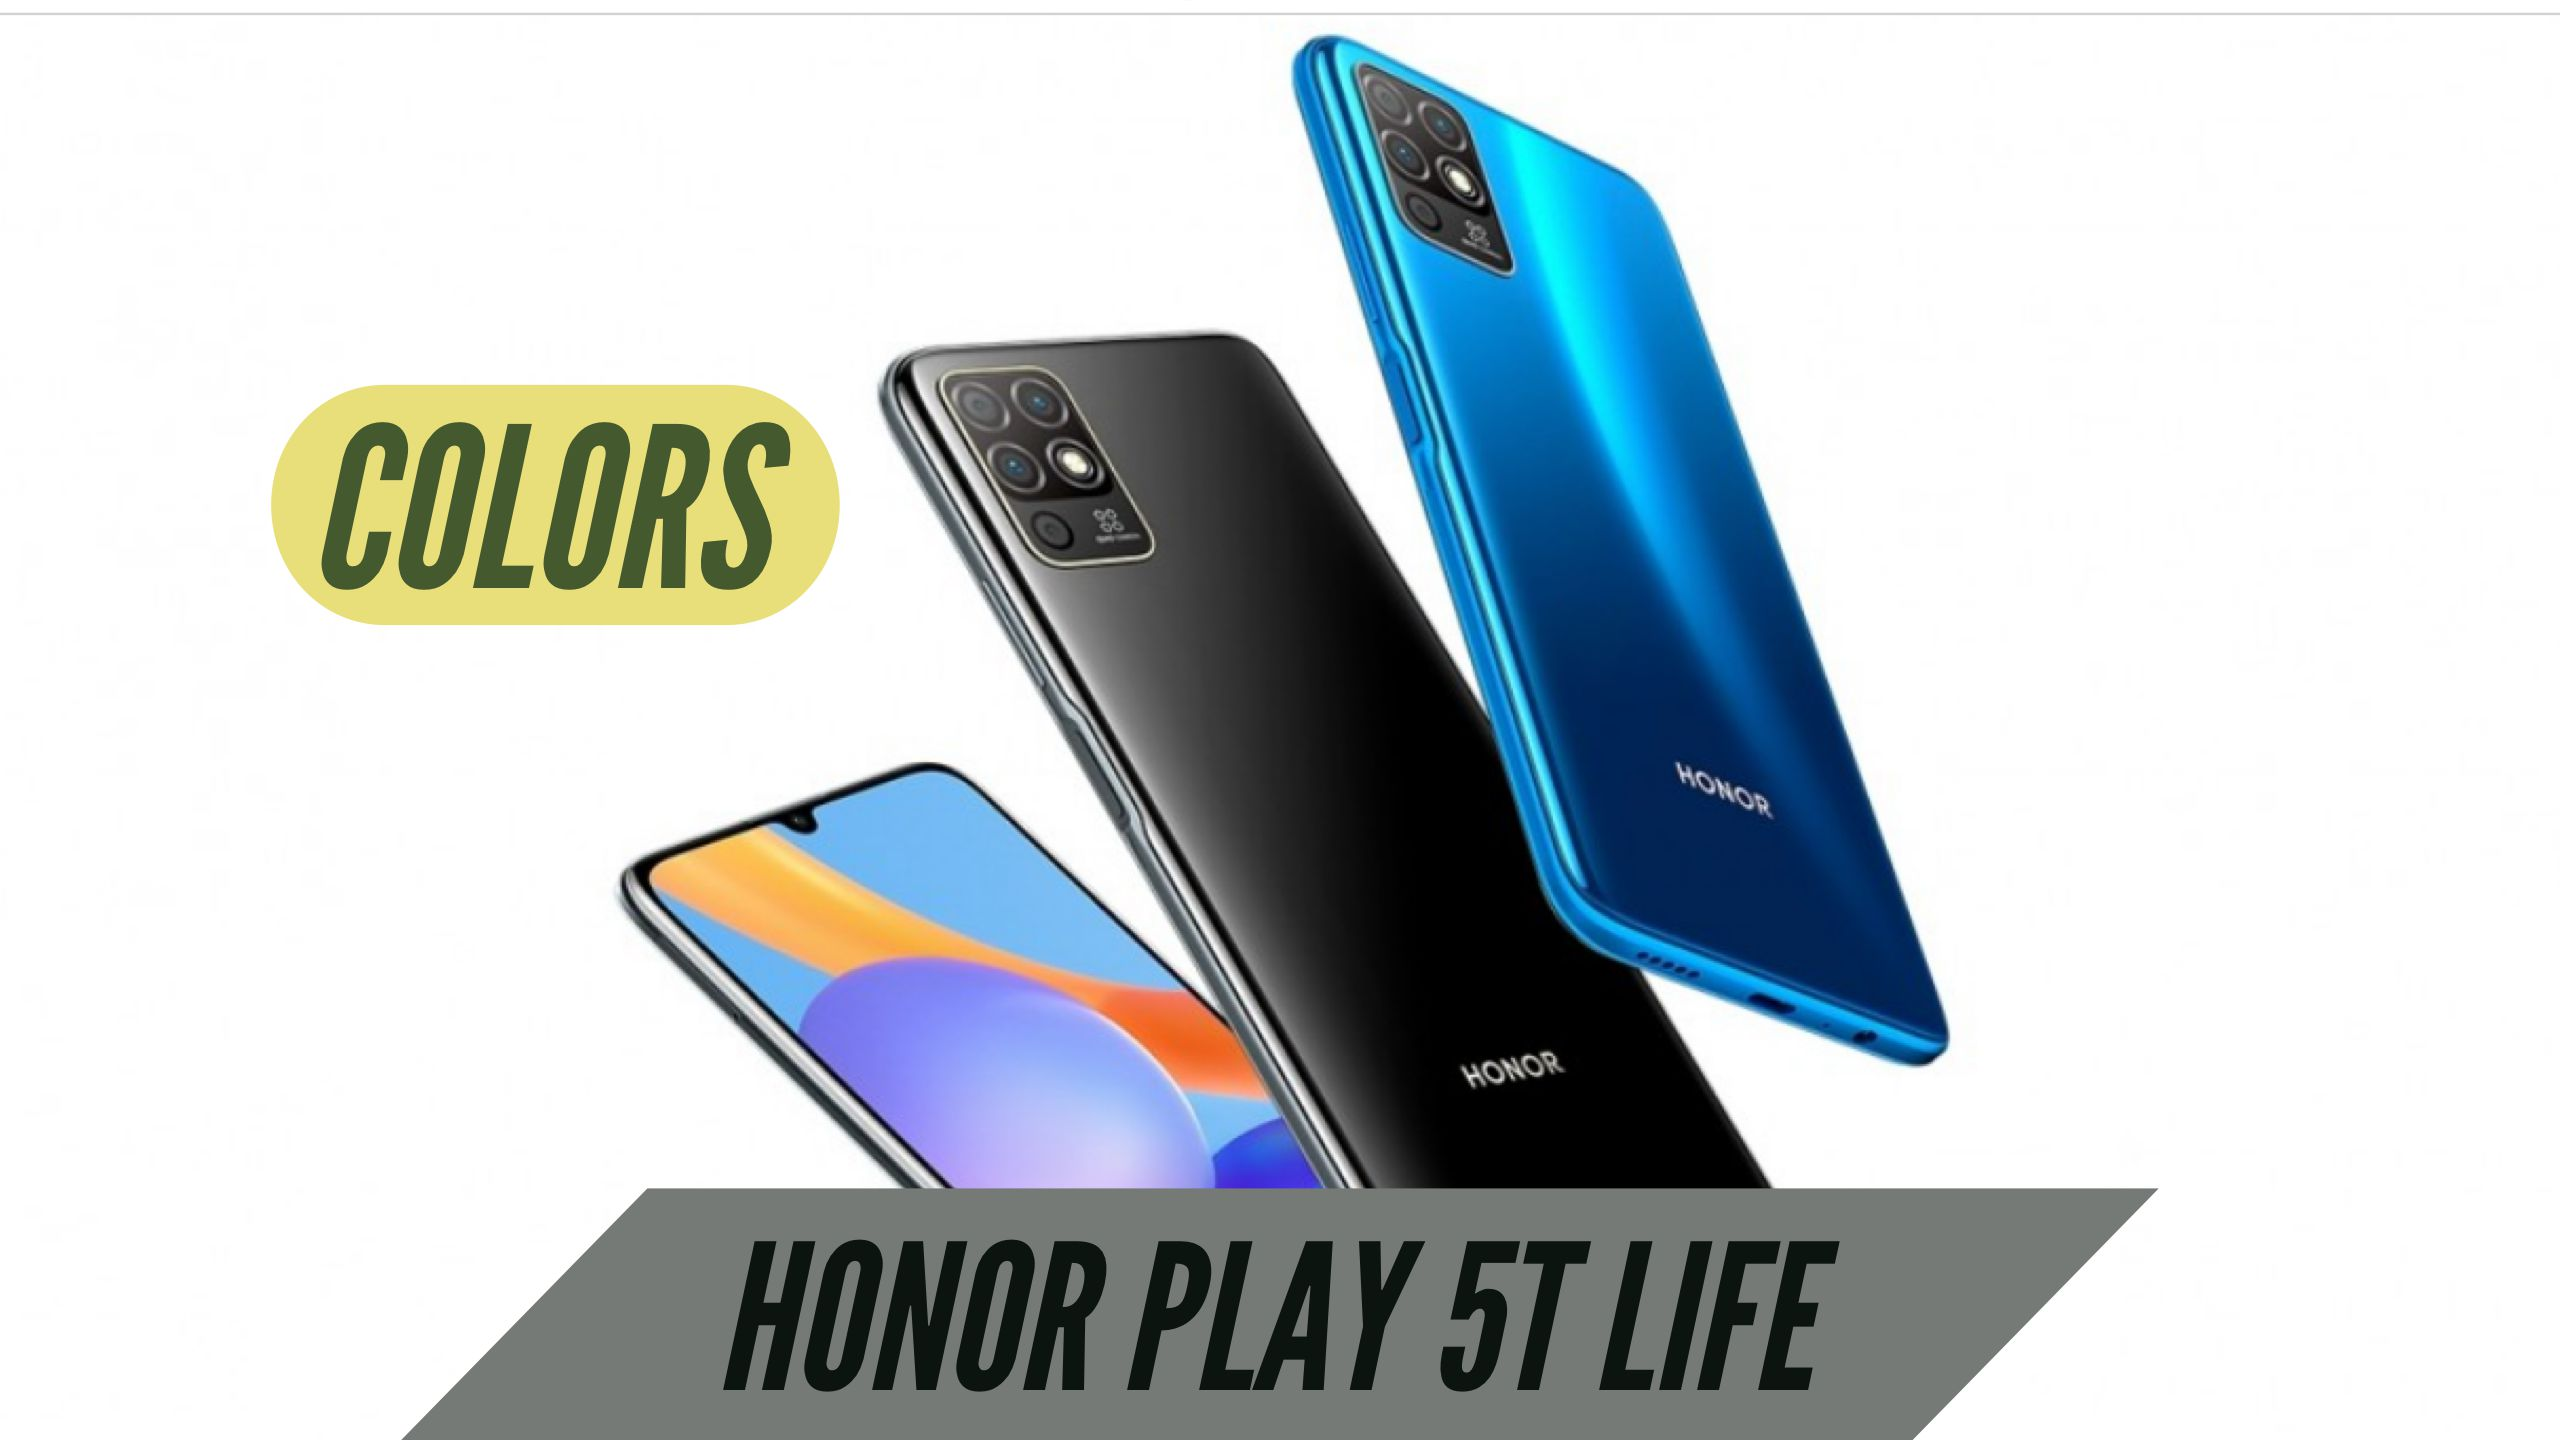 Honor Play 5T Life Colors